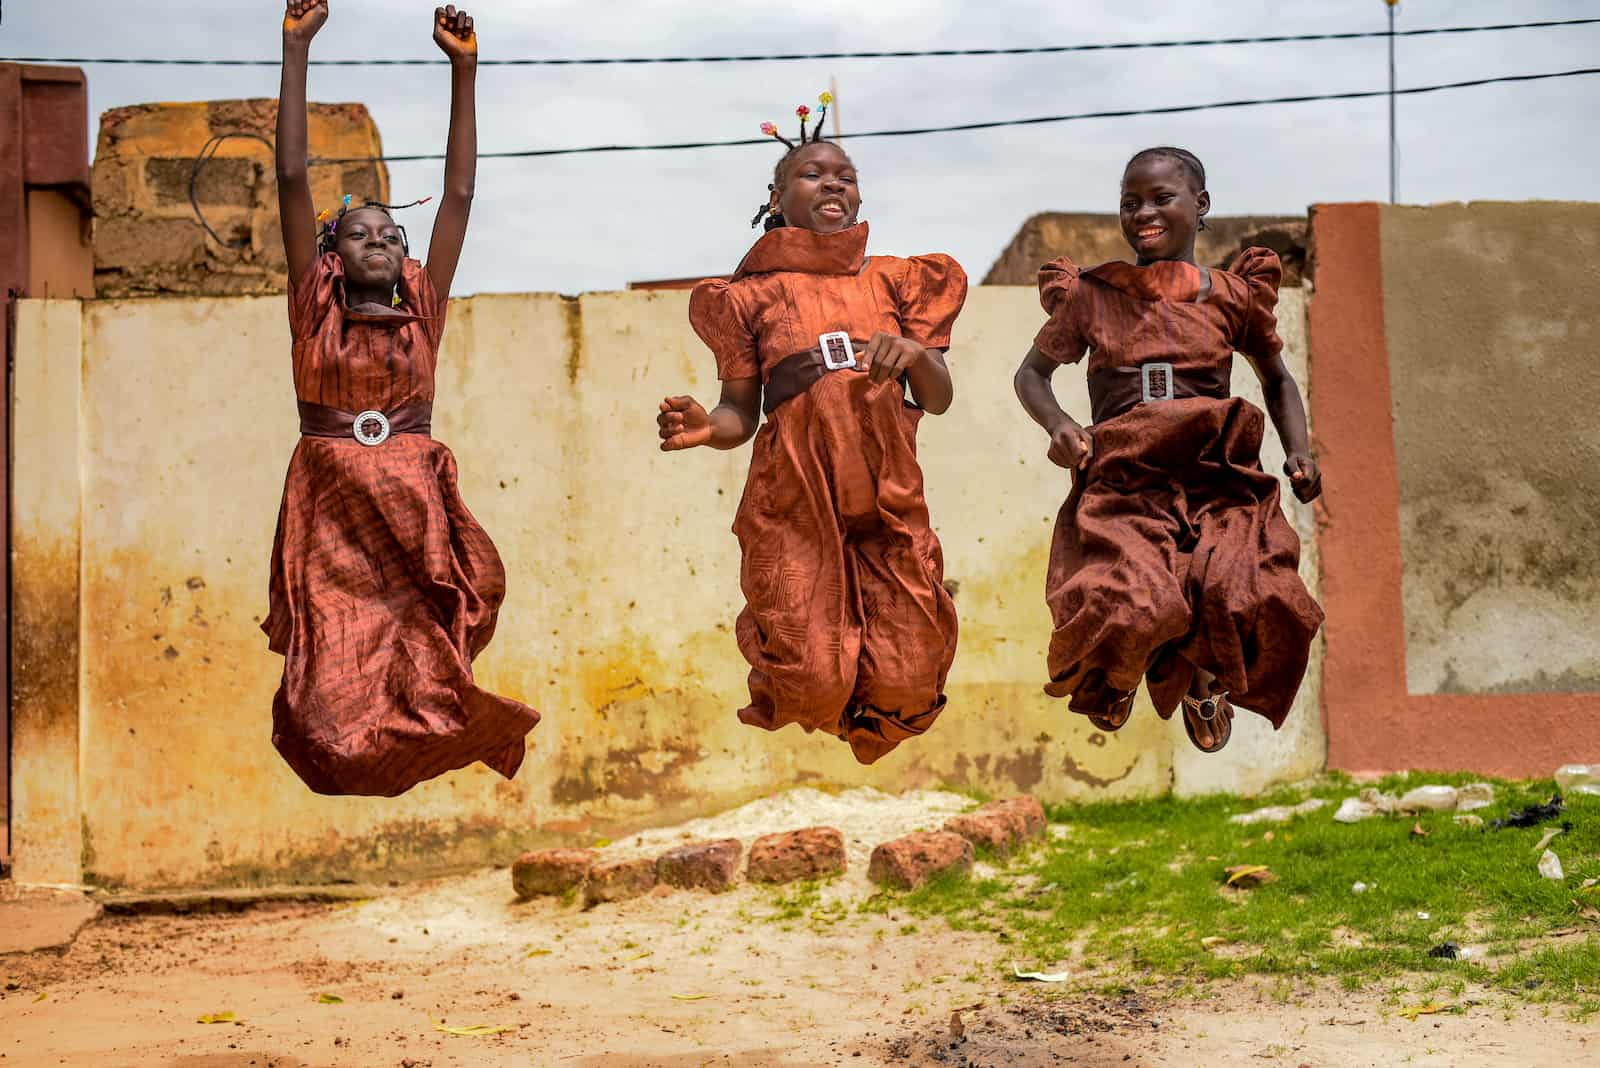 Three girls wearing brown dresses jump in the air, smiling.